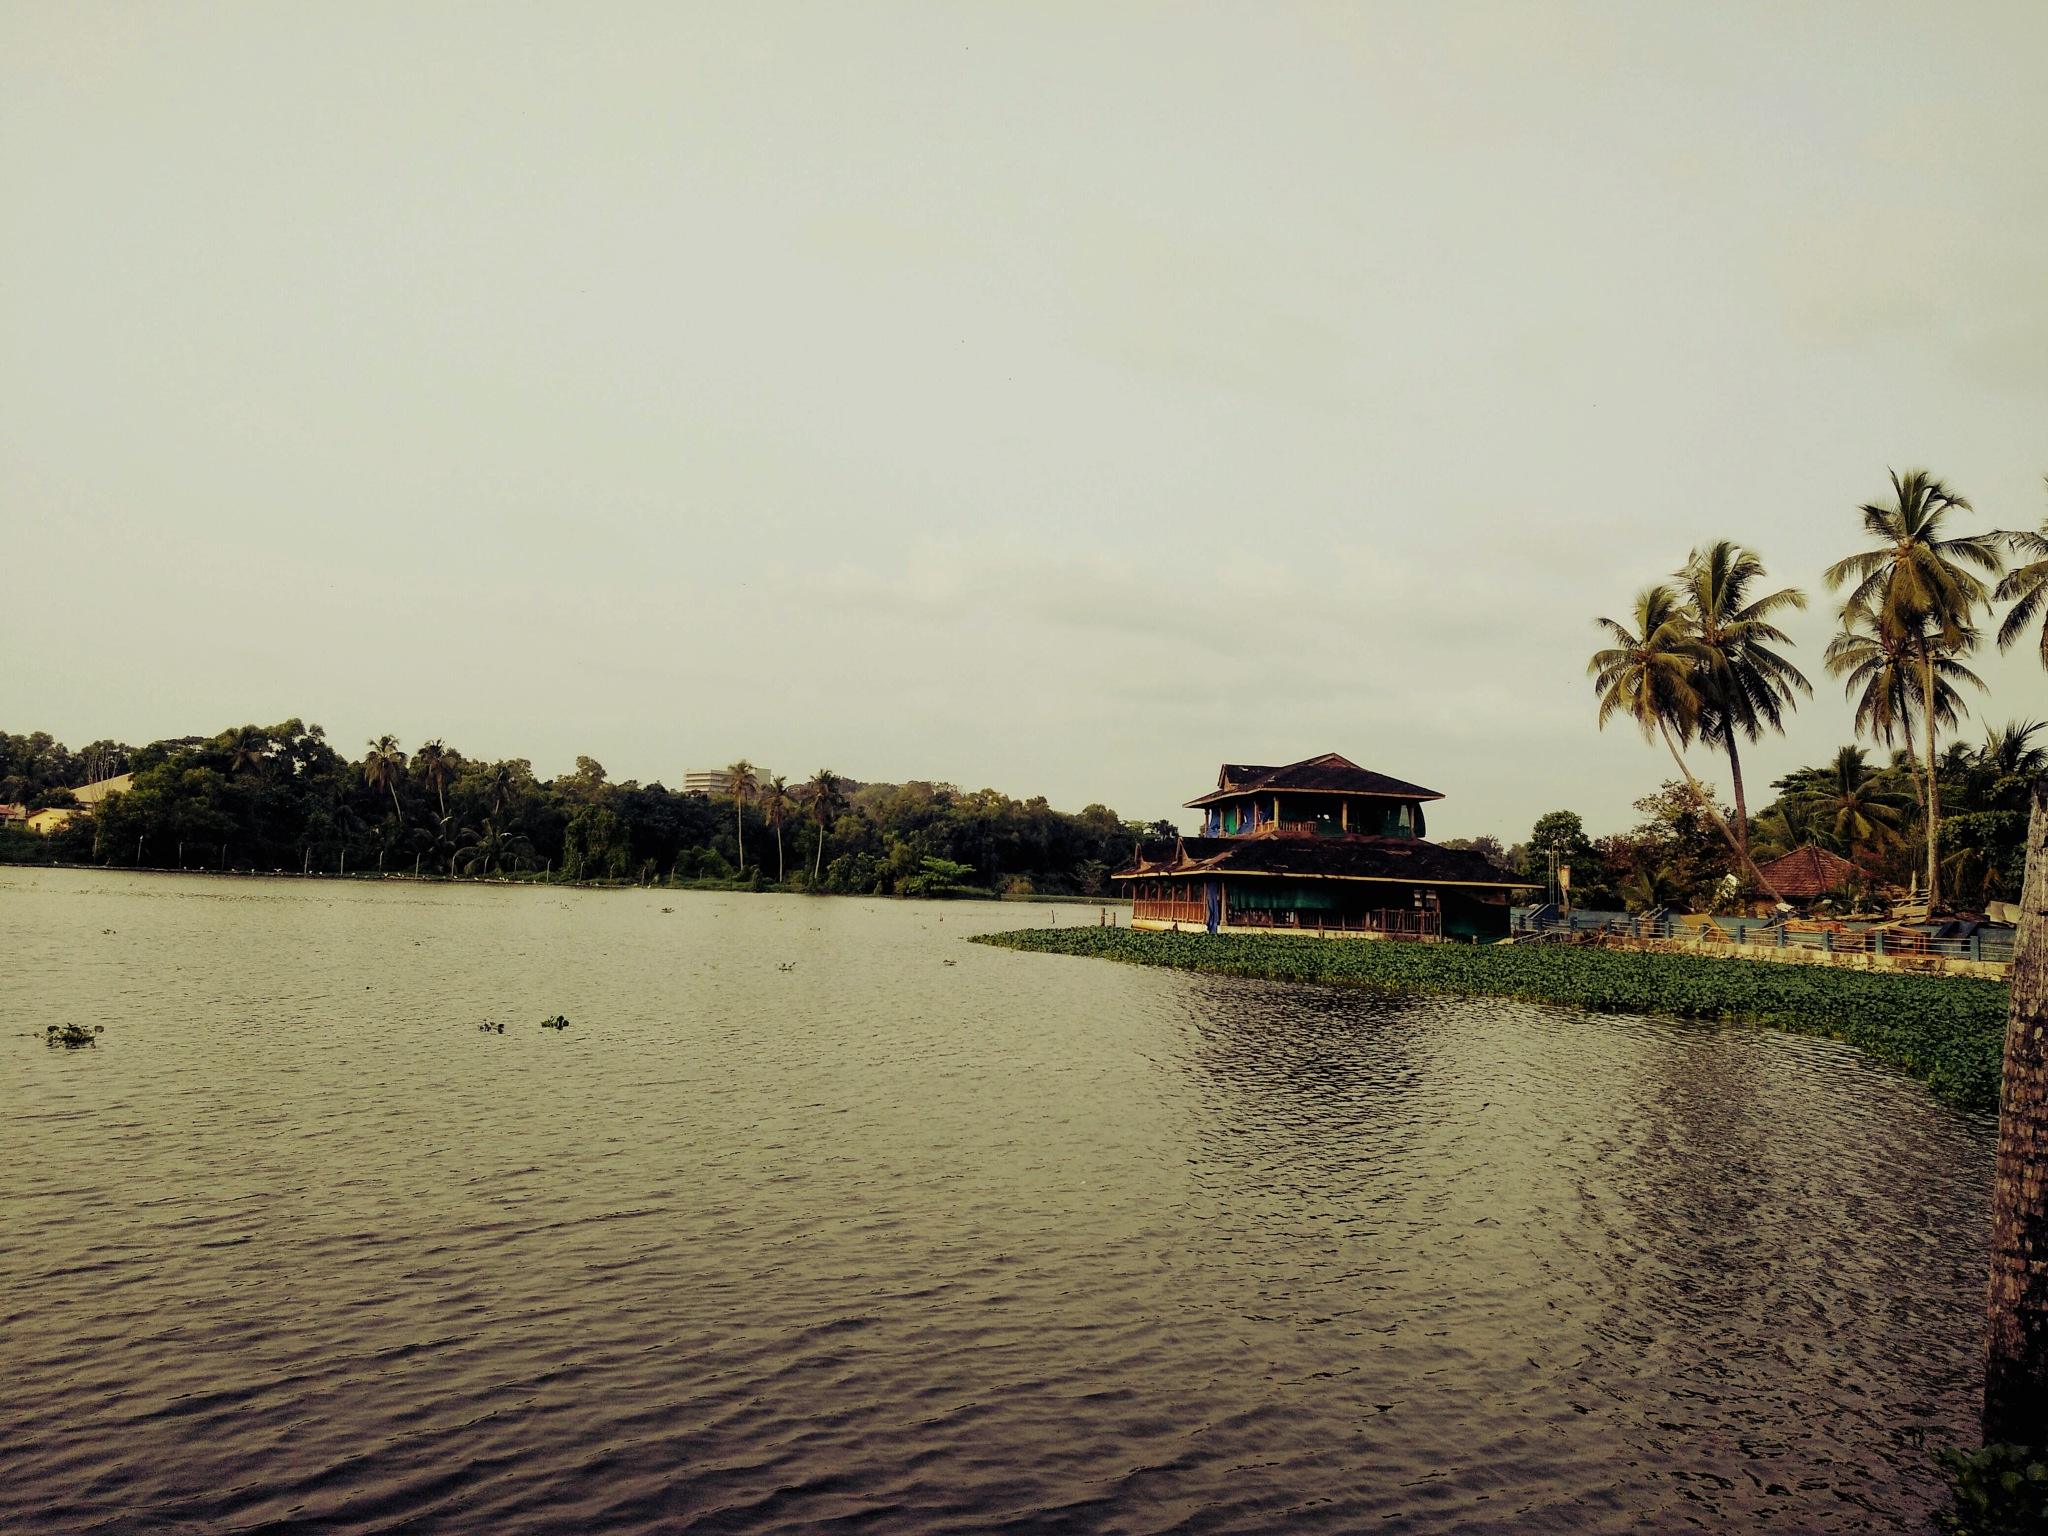 Veli lake by nidaansari0712